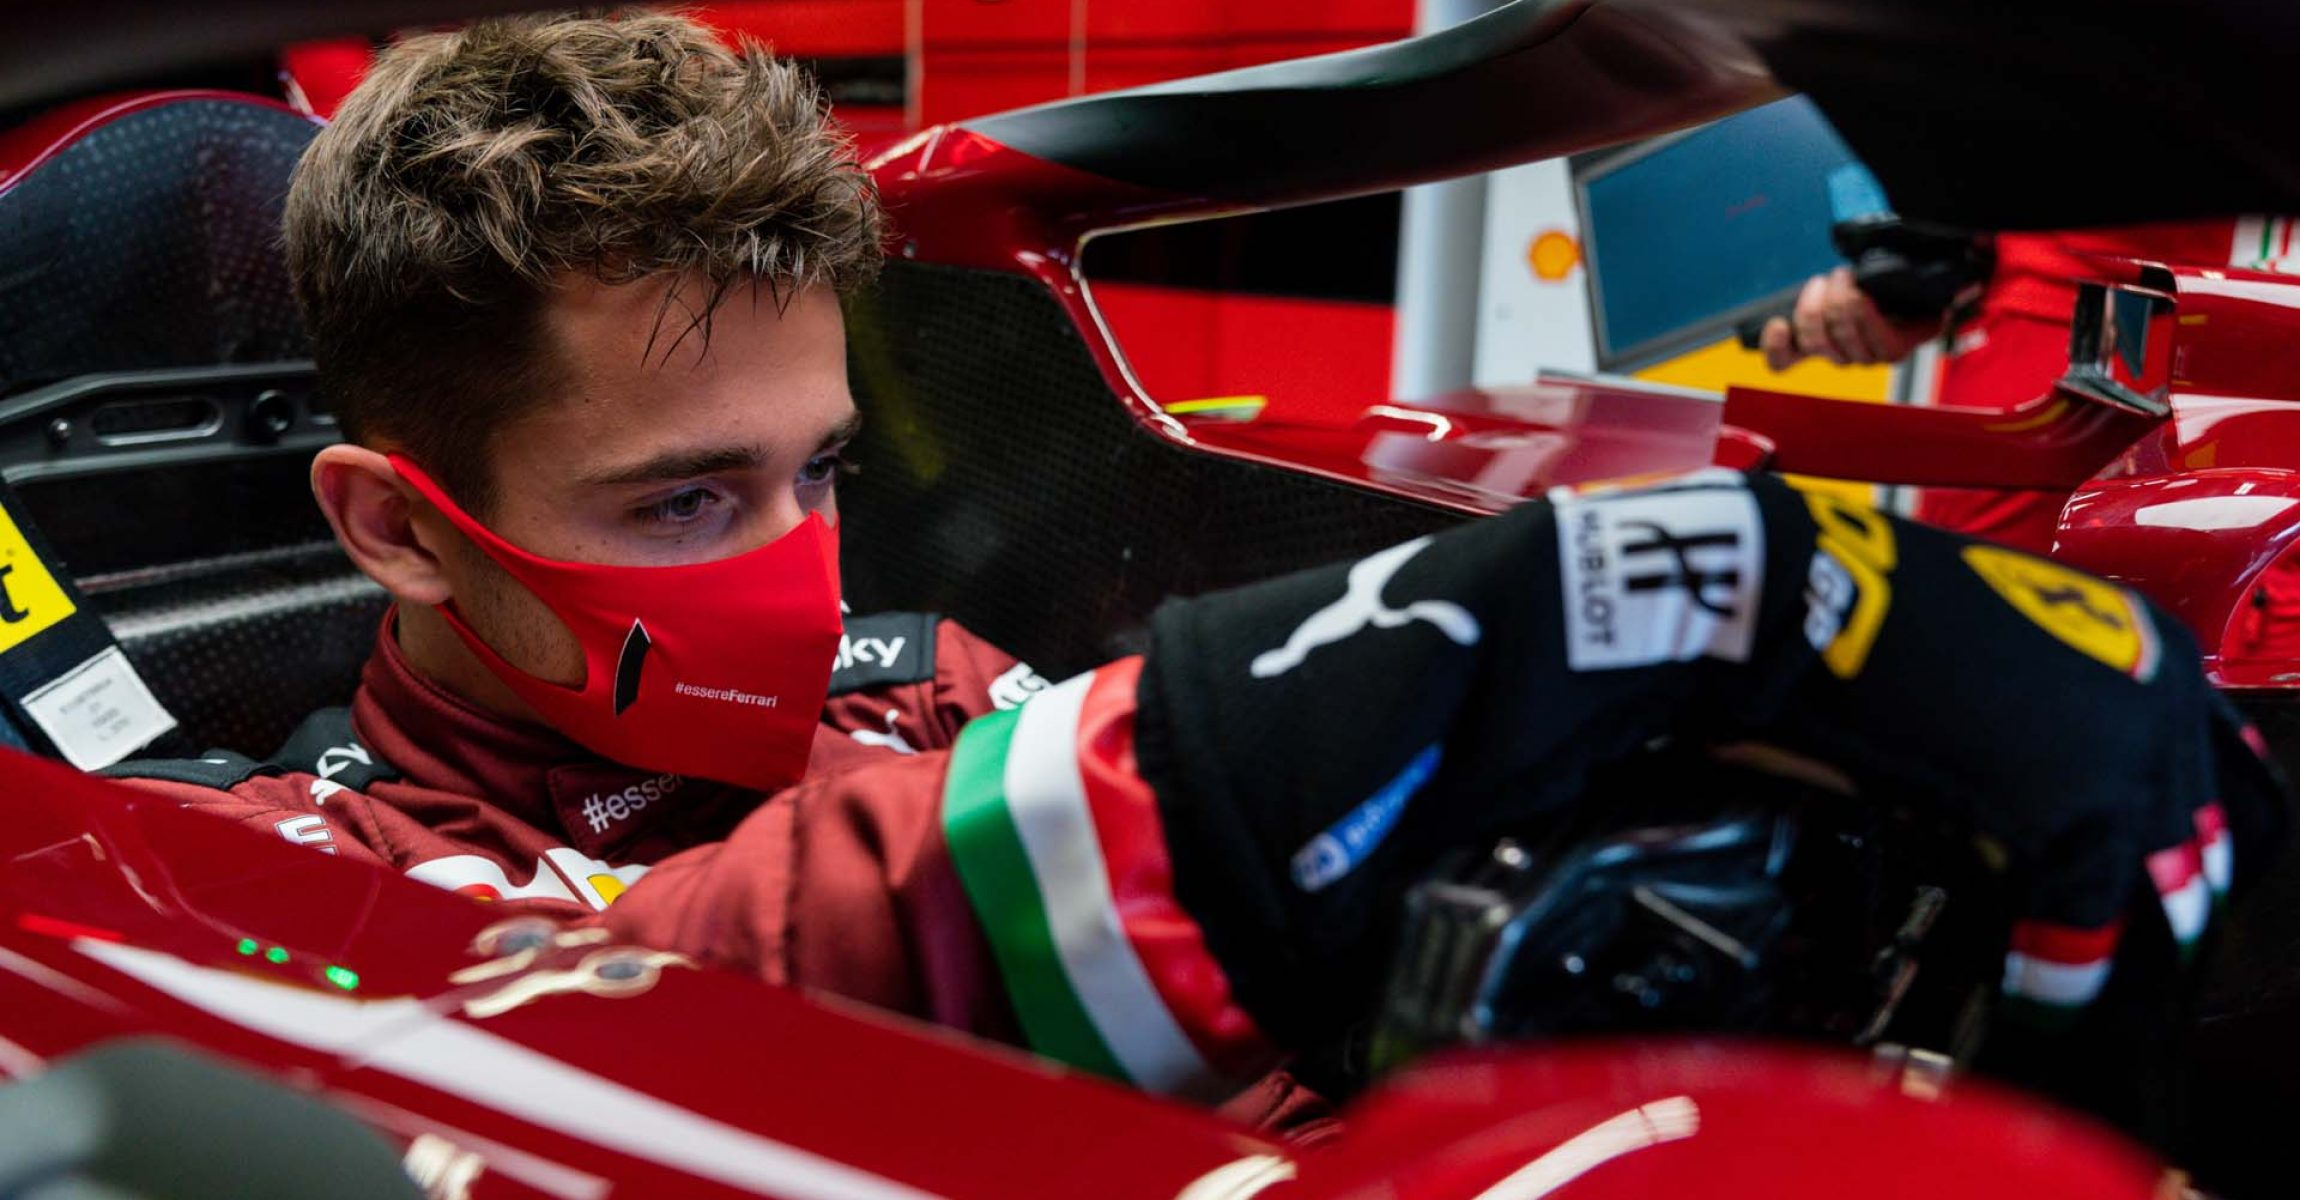 GP TOSCANA FERRARI 1000 F1/2020 -  GIOVEDÌ 10/09/2020   credit: @Scuderia Ferrari Press Office Charles Leclerc